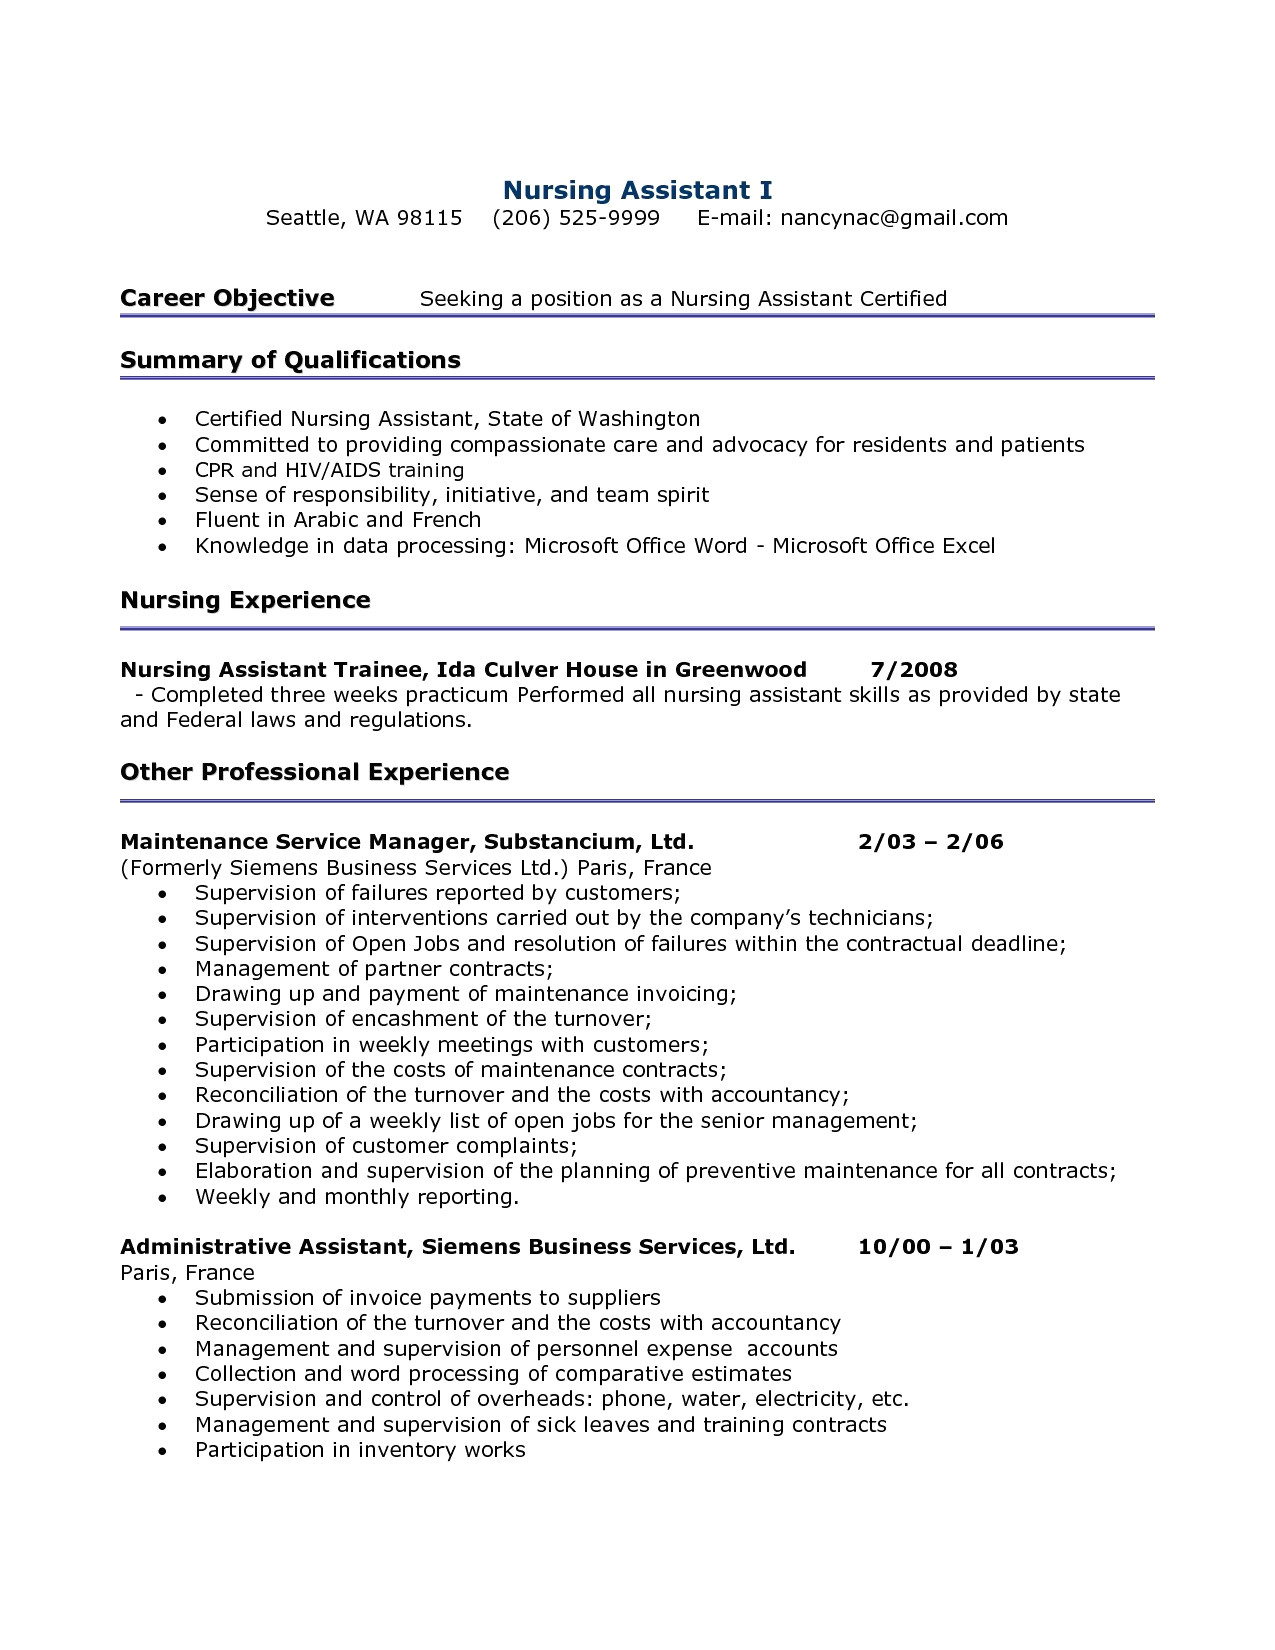 nursing resume template free download example-Luxury Awesome Youtube Banner Designs Free Download Resume Templates Lovely Pr Resume Template Elegant Dictionary 5-a